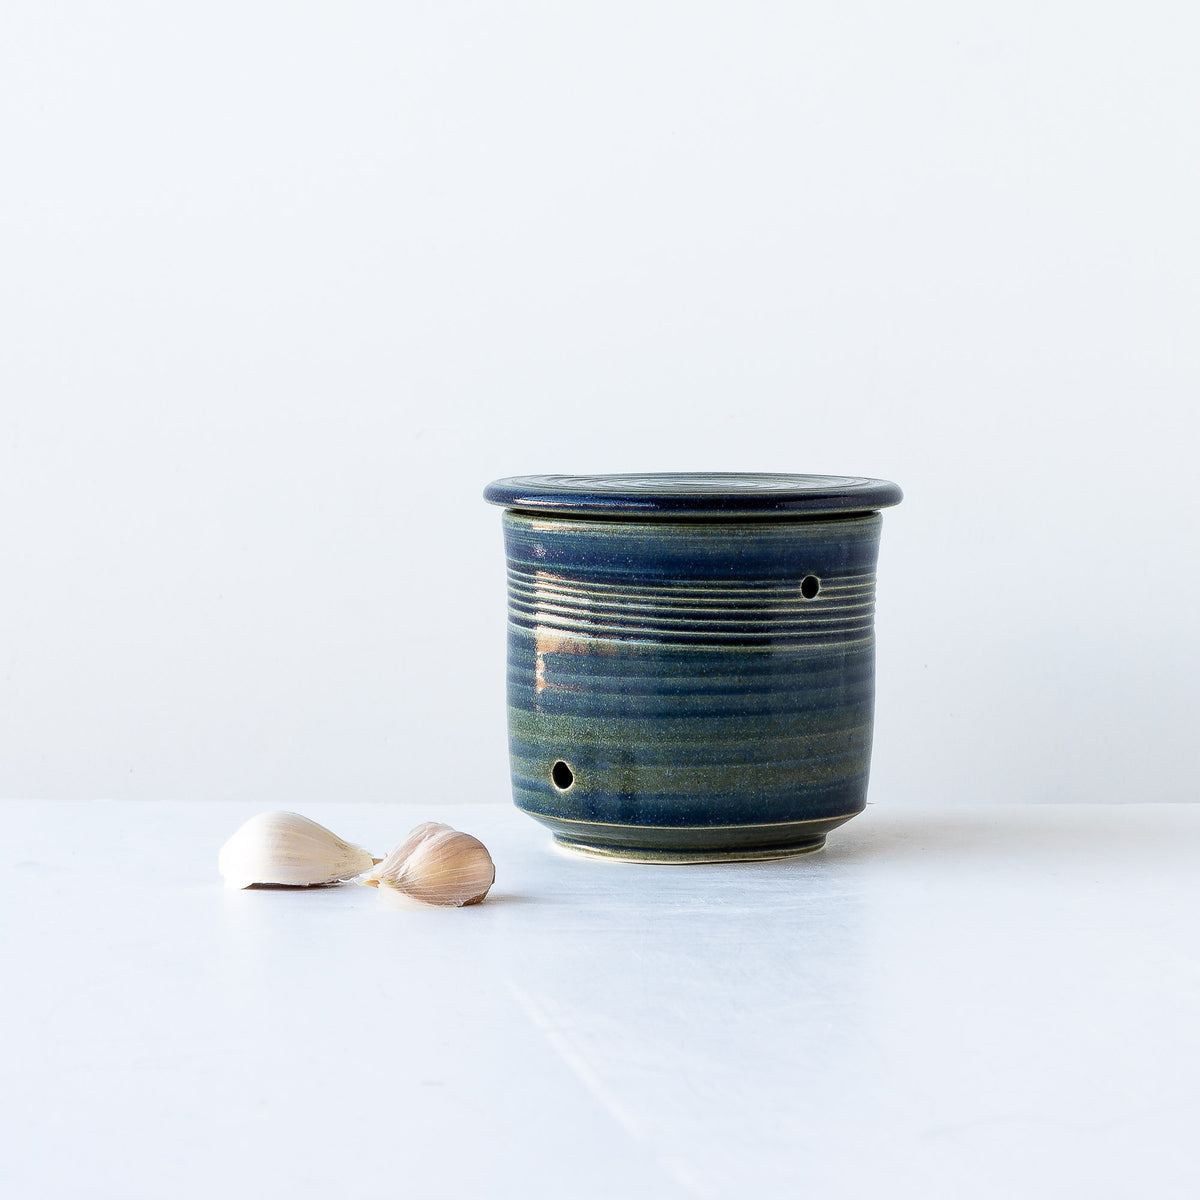 Ceramic Garlic Keeper Handmade in Porcelain - Blue Patterns - Sold by Chic & Basta